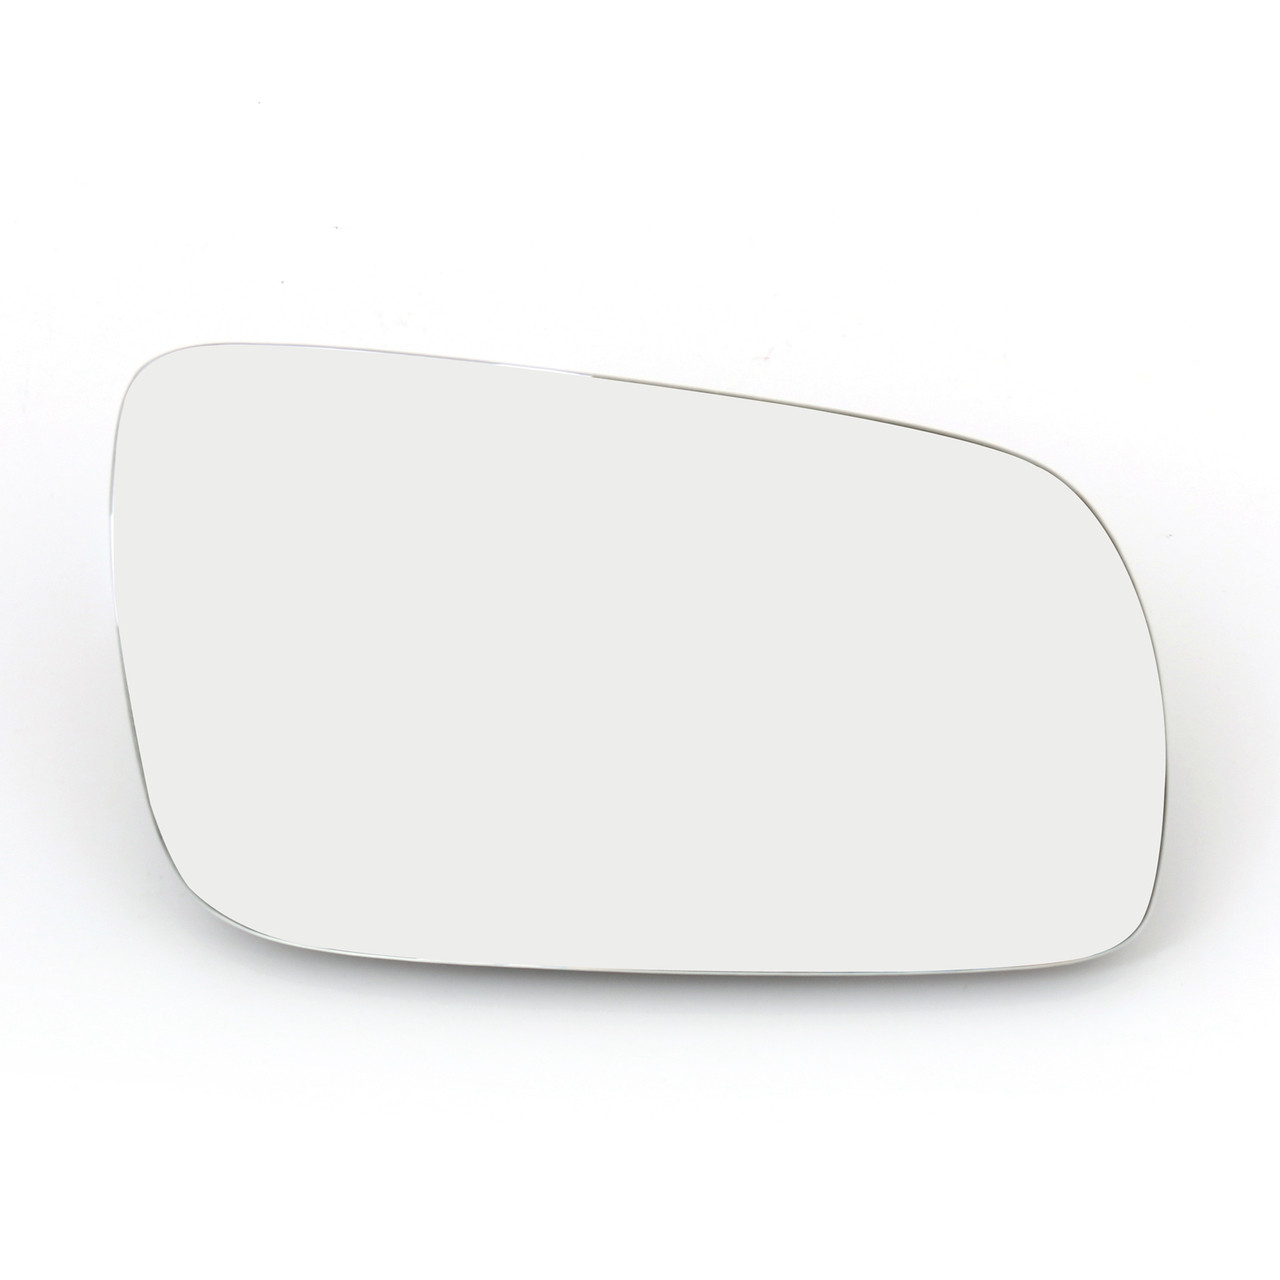 Right Heater Mirror Door Glass VW Jetta MK4 Passat B5 Bora Golf MK4 (99-04)